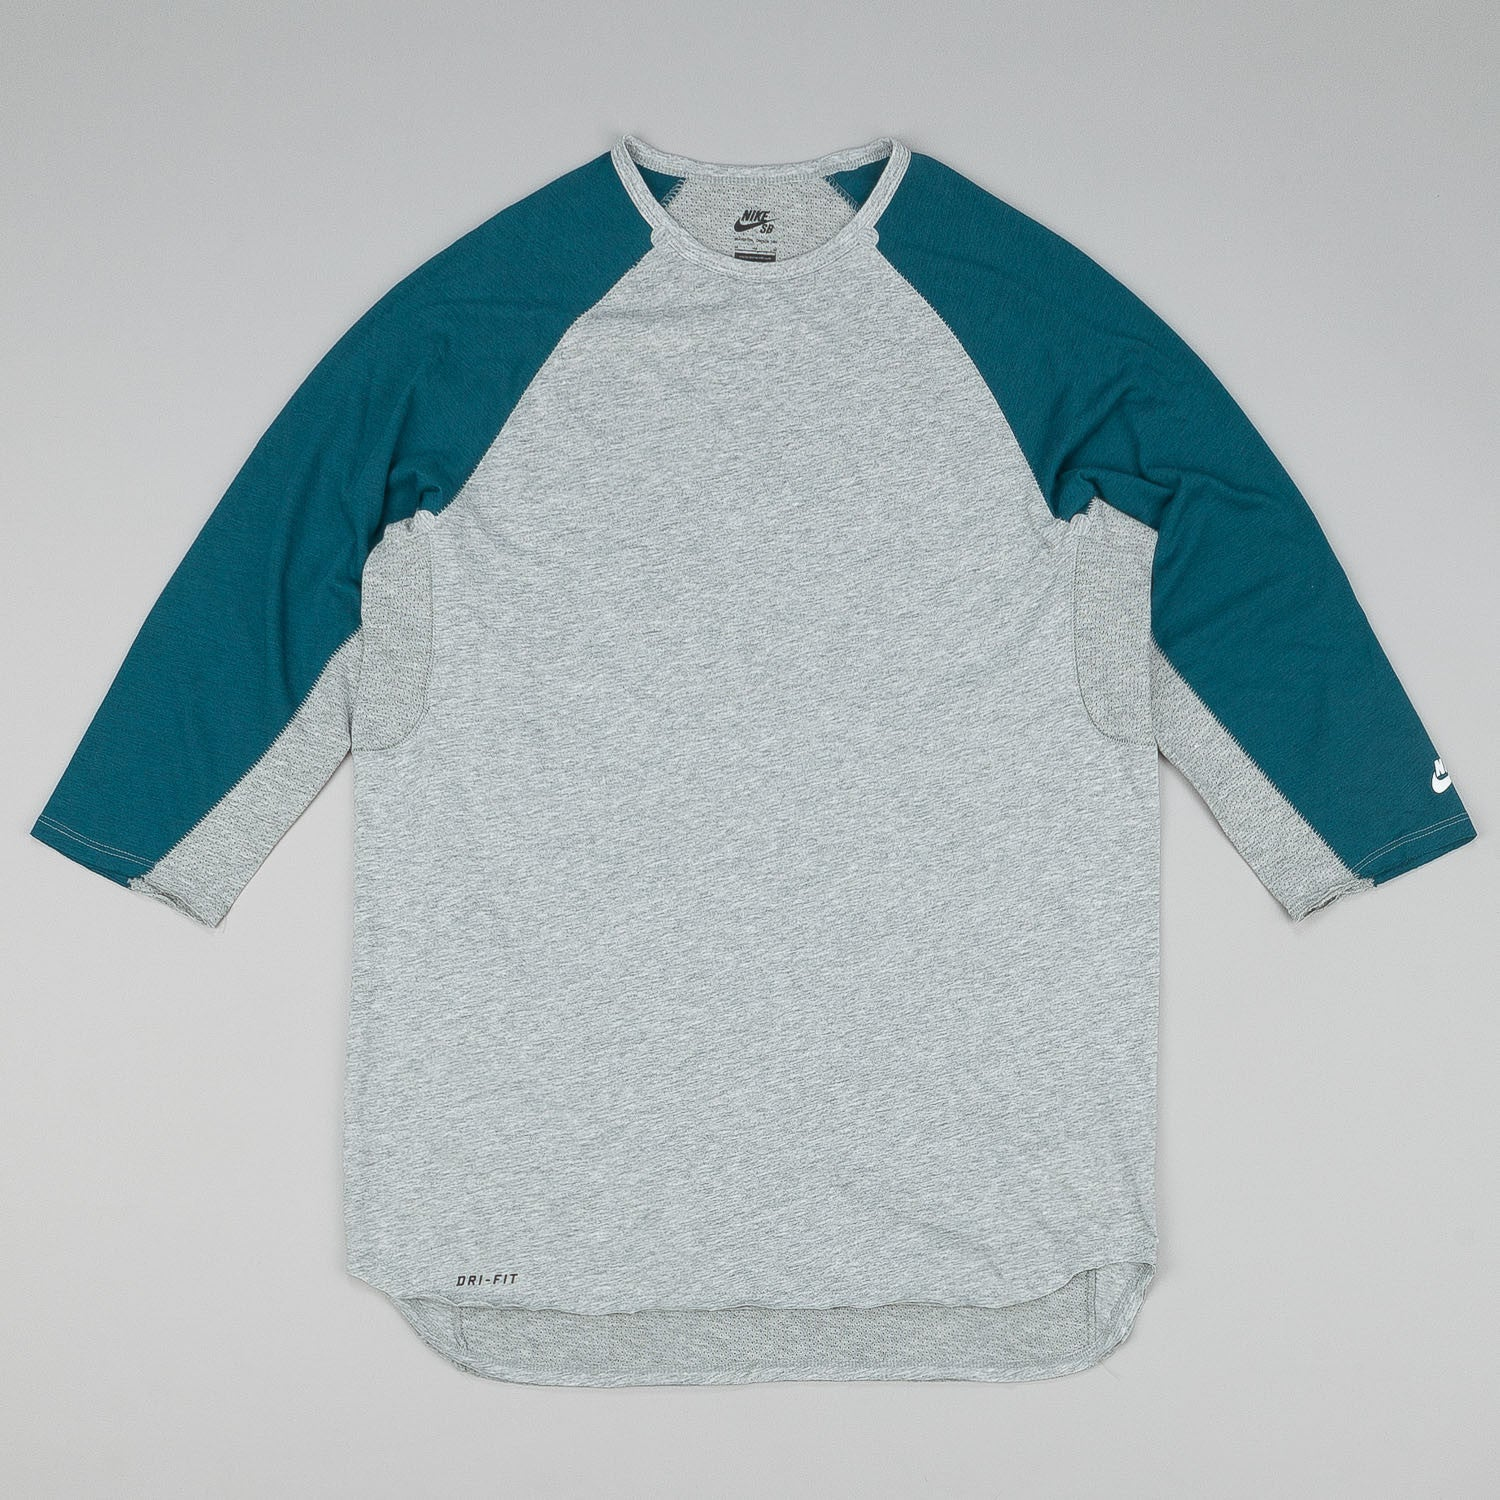 Nike SB Skyline DFC 3/4 Sleeve Raglan T-Shirt - Dark Grey Heather / White